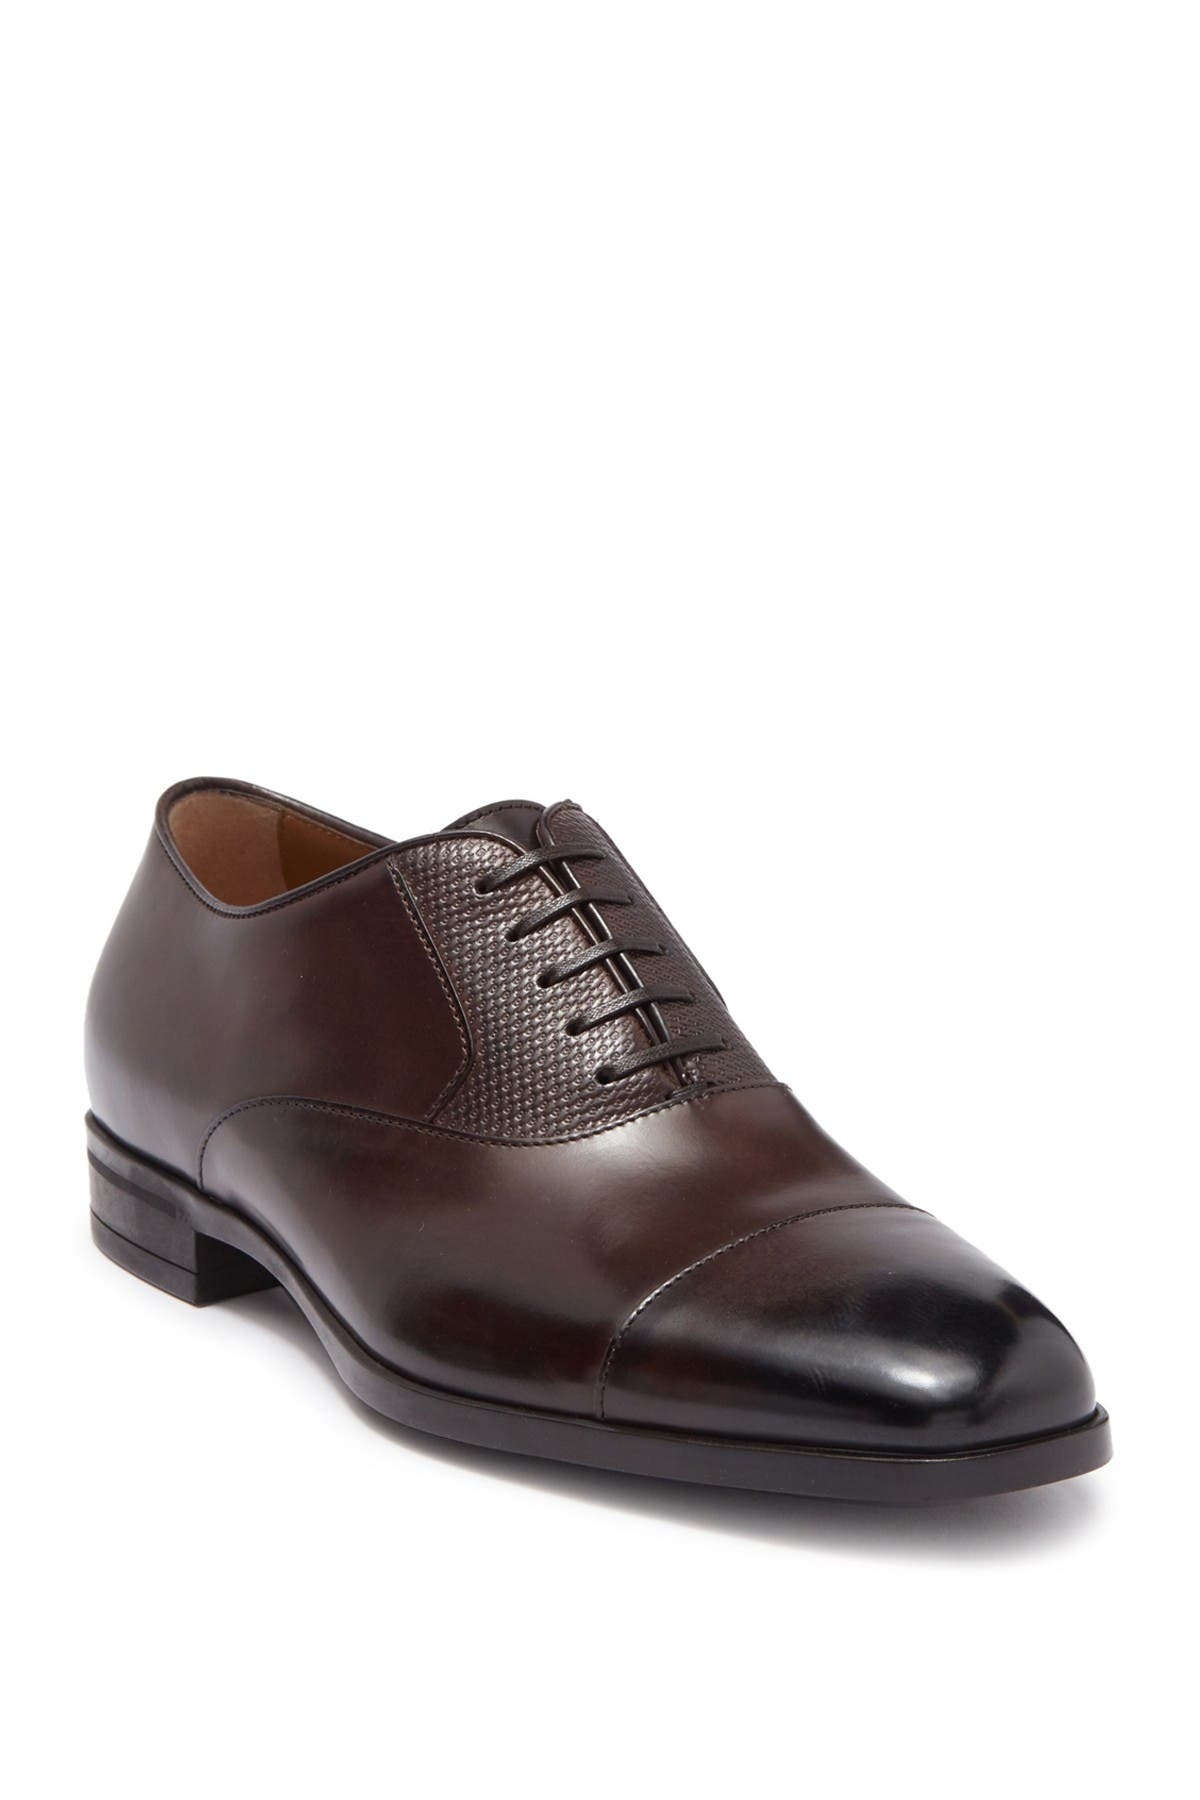 Image of BOSS Kensington Leather Oxford